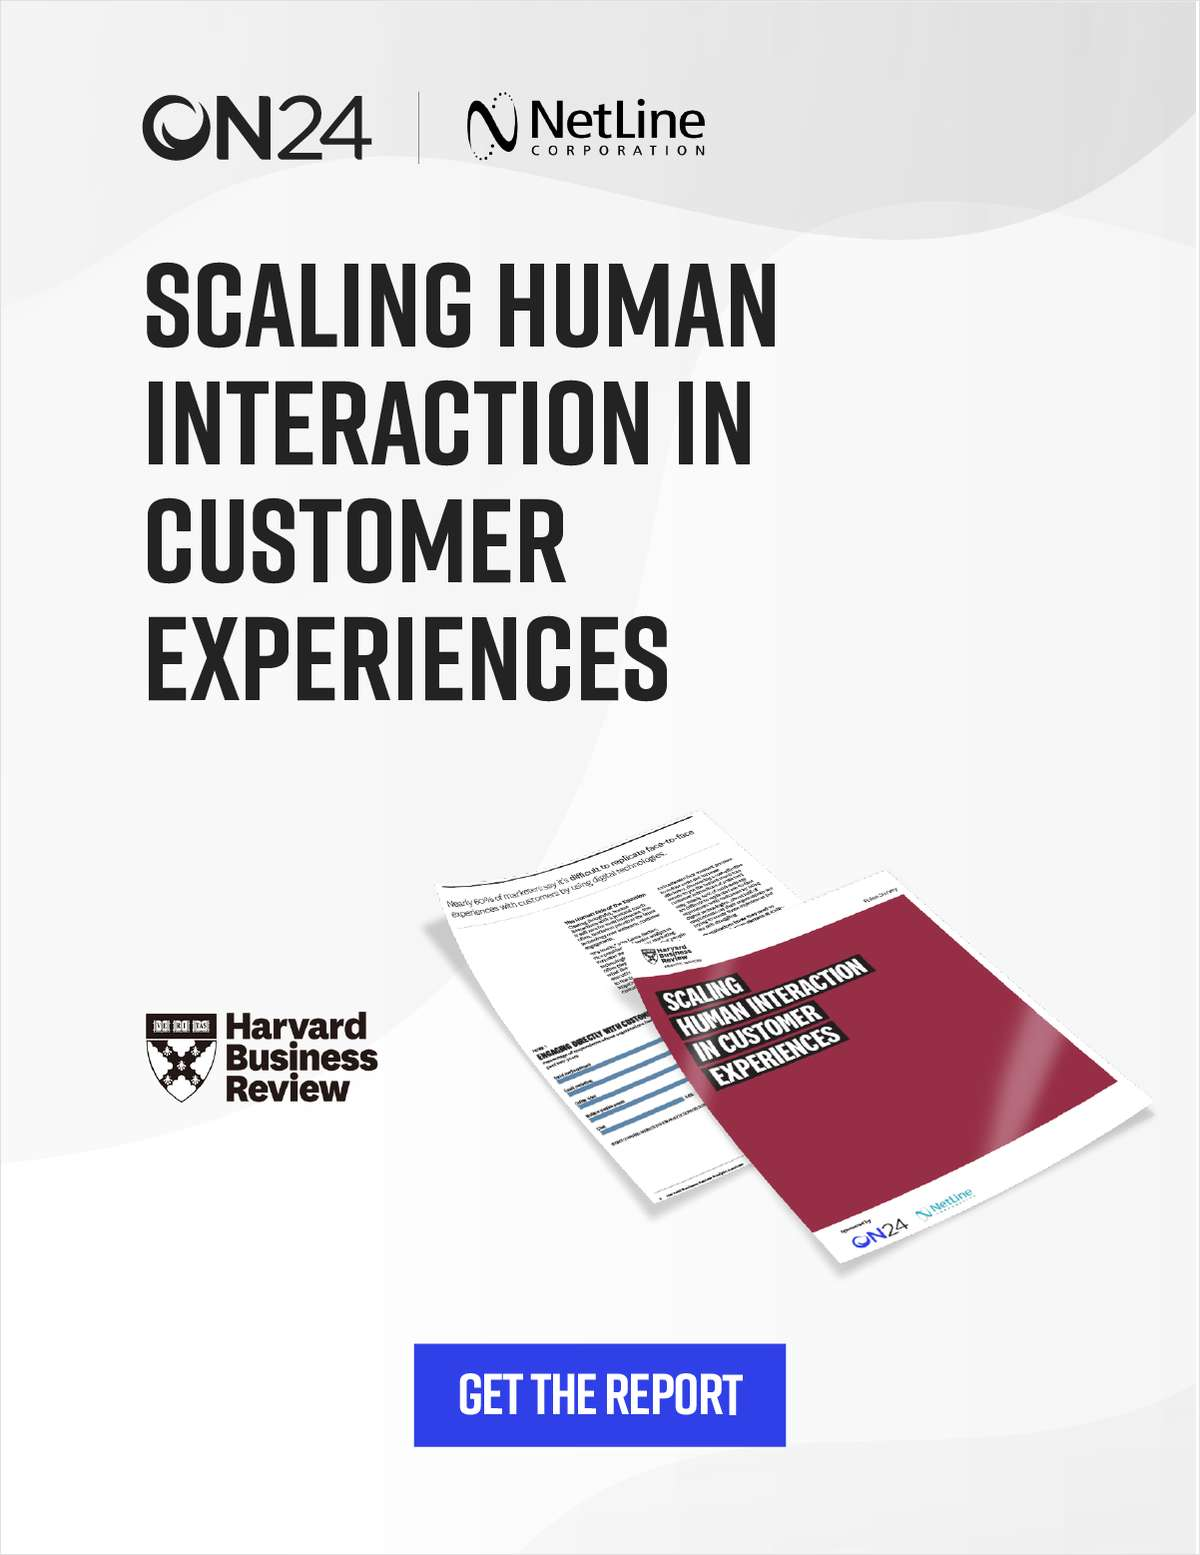 Scaling Human Interactions in Customer Experiences